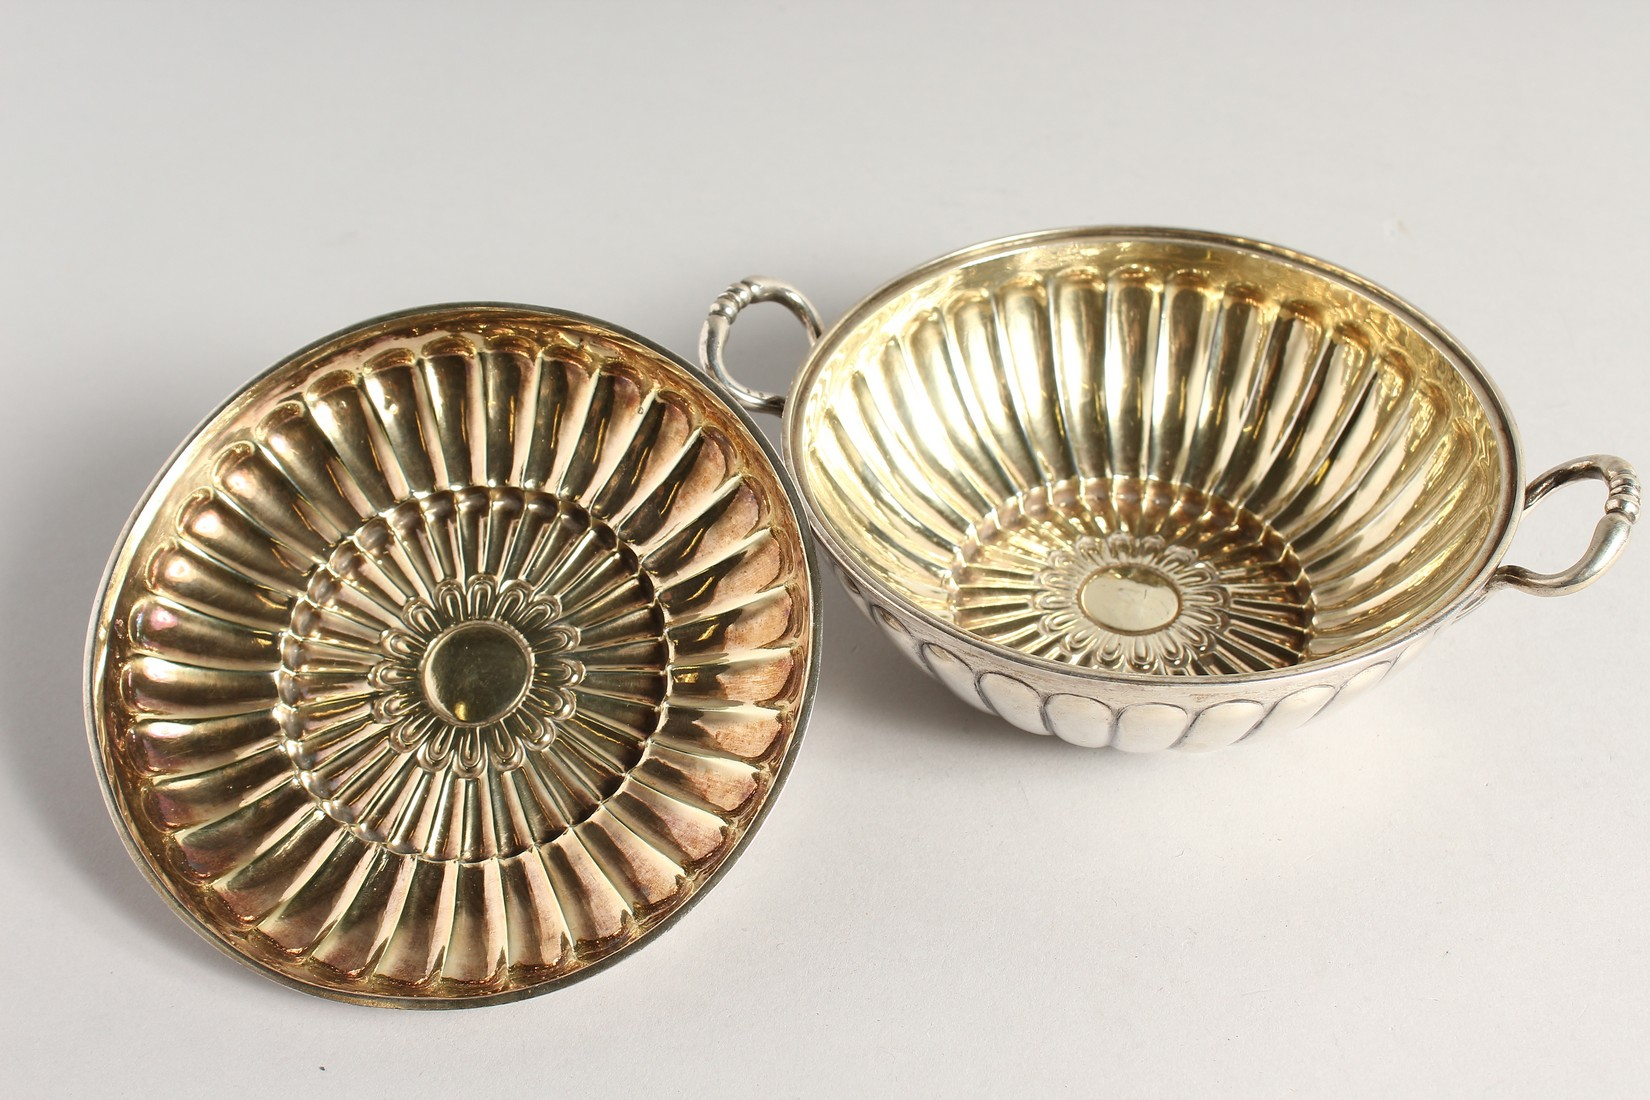 A GEORGE II SILVER CIRCULAR TWO HANDLED ECULLE and cover with fluted decorations. 5.5ins diameter - Image 4 of 7